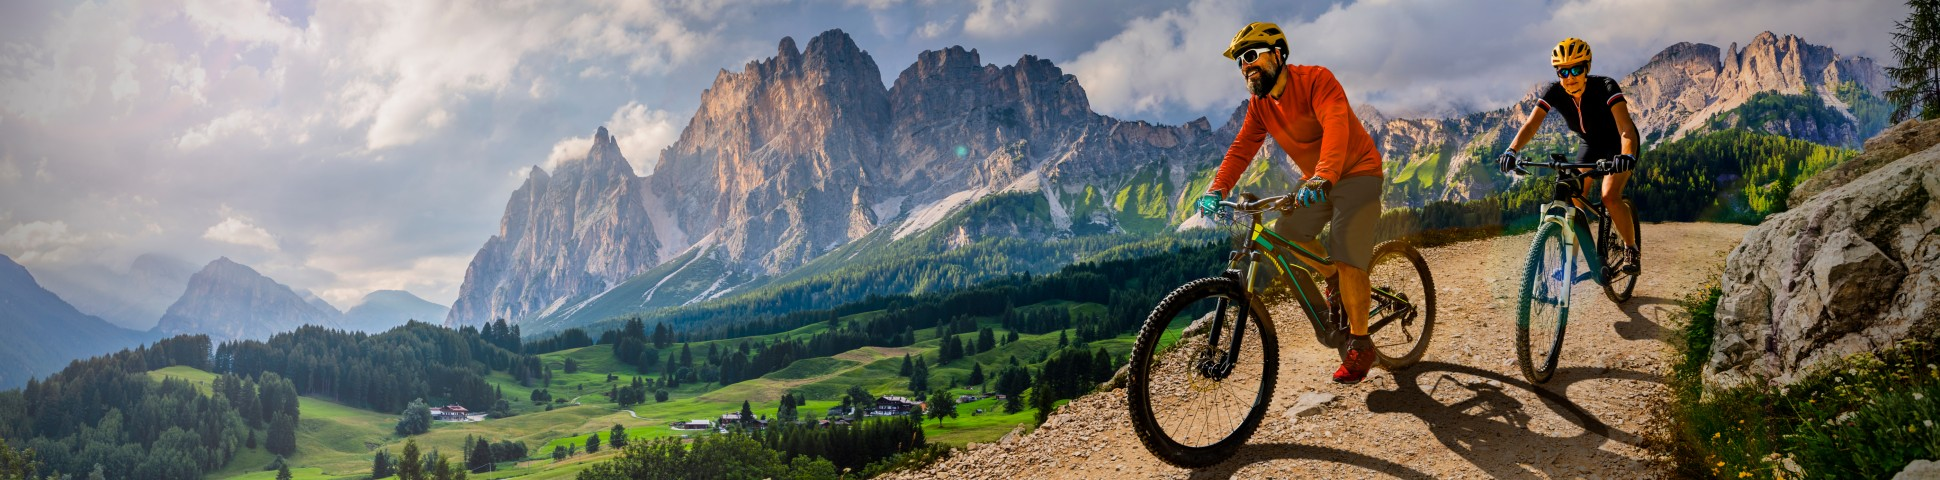 Ebike riding in Italy